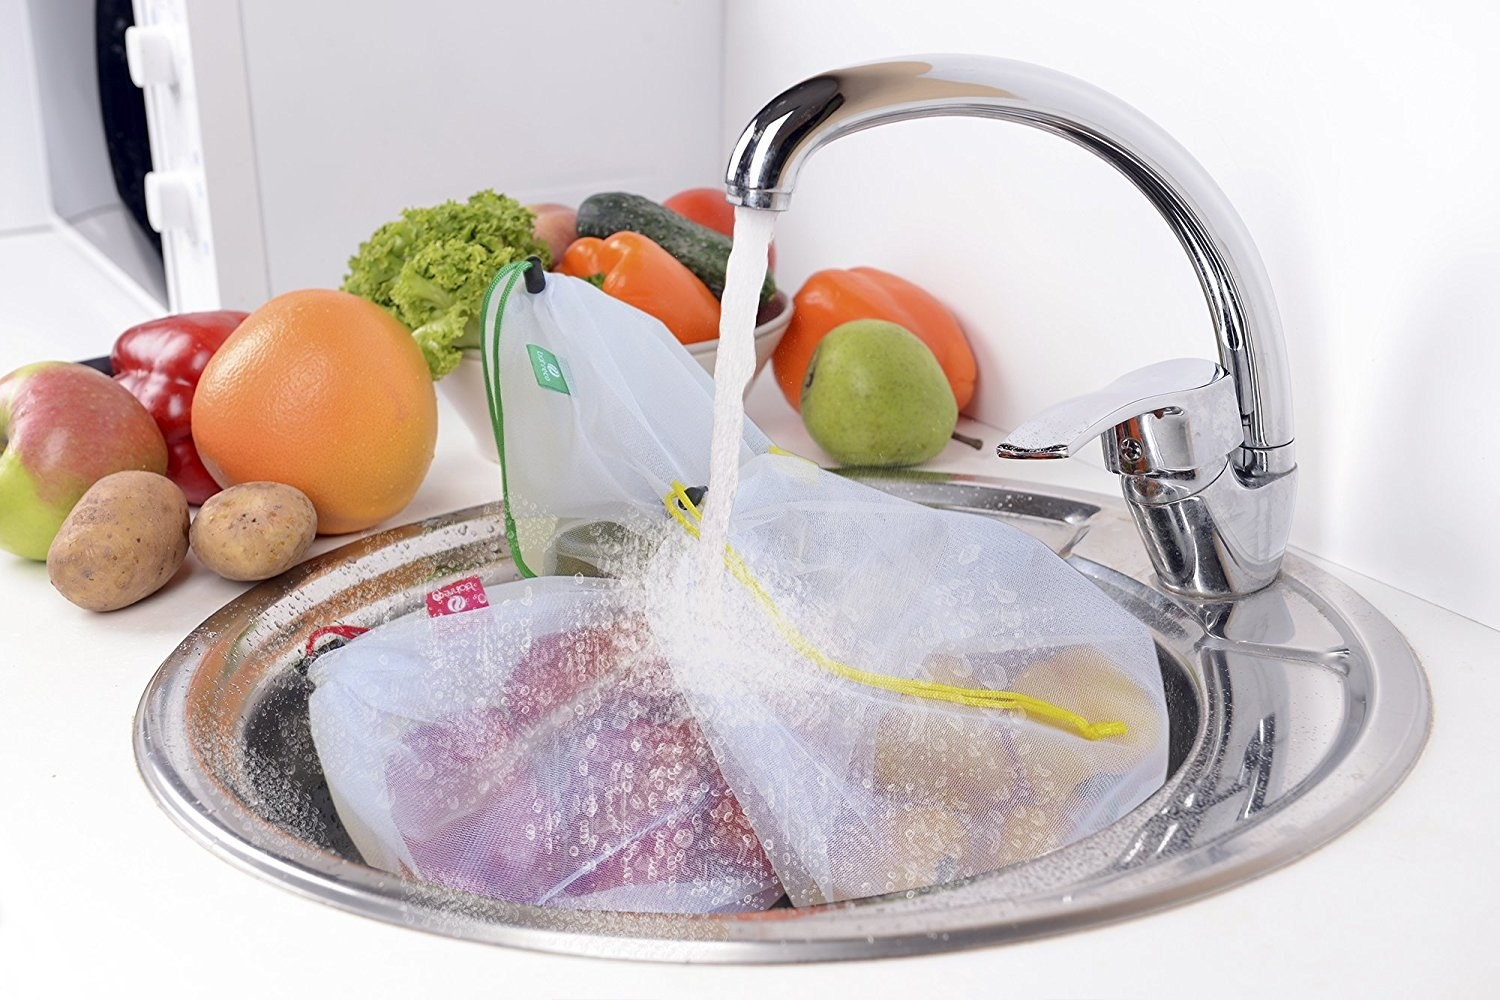 The bags filled with produce being rinsed in a sink